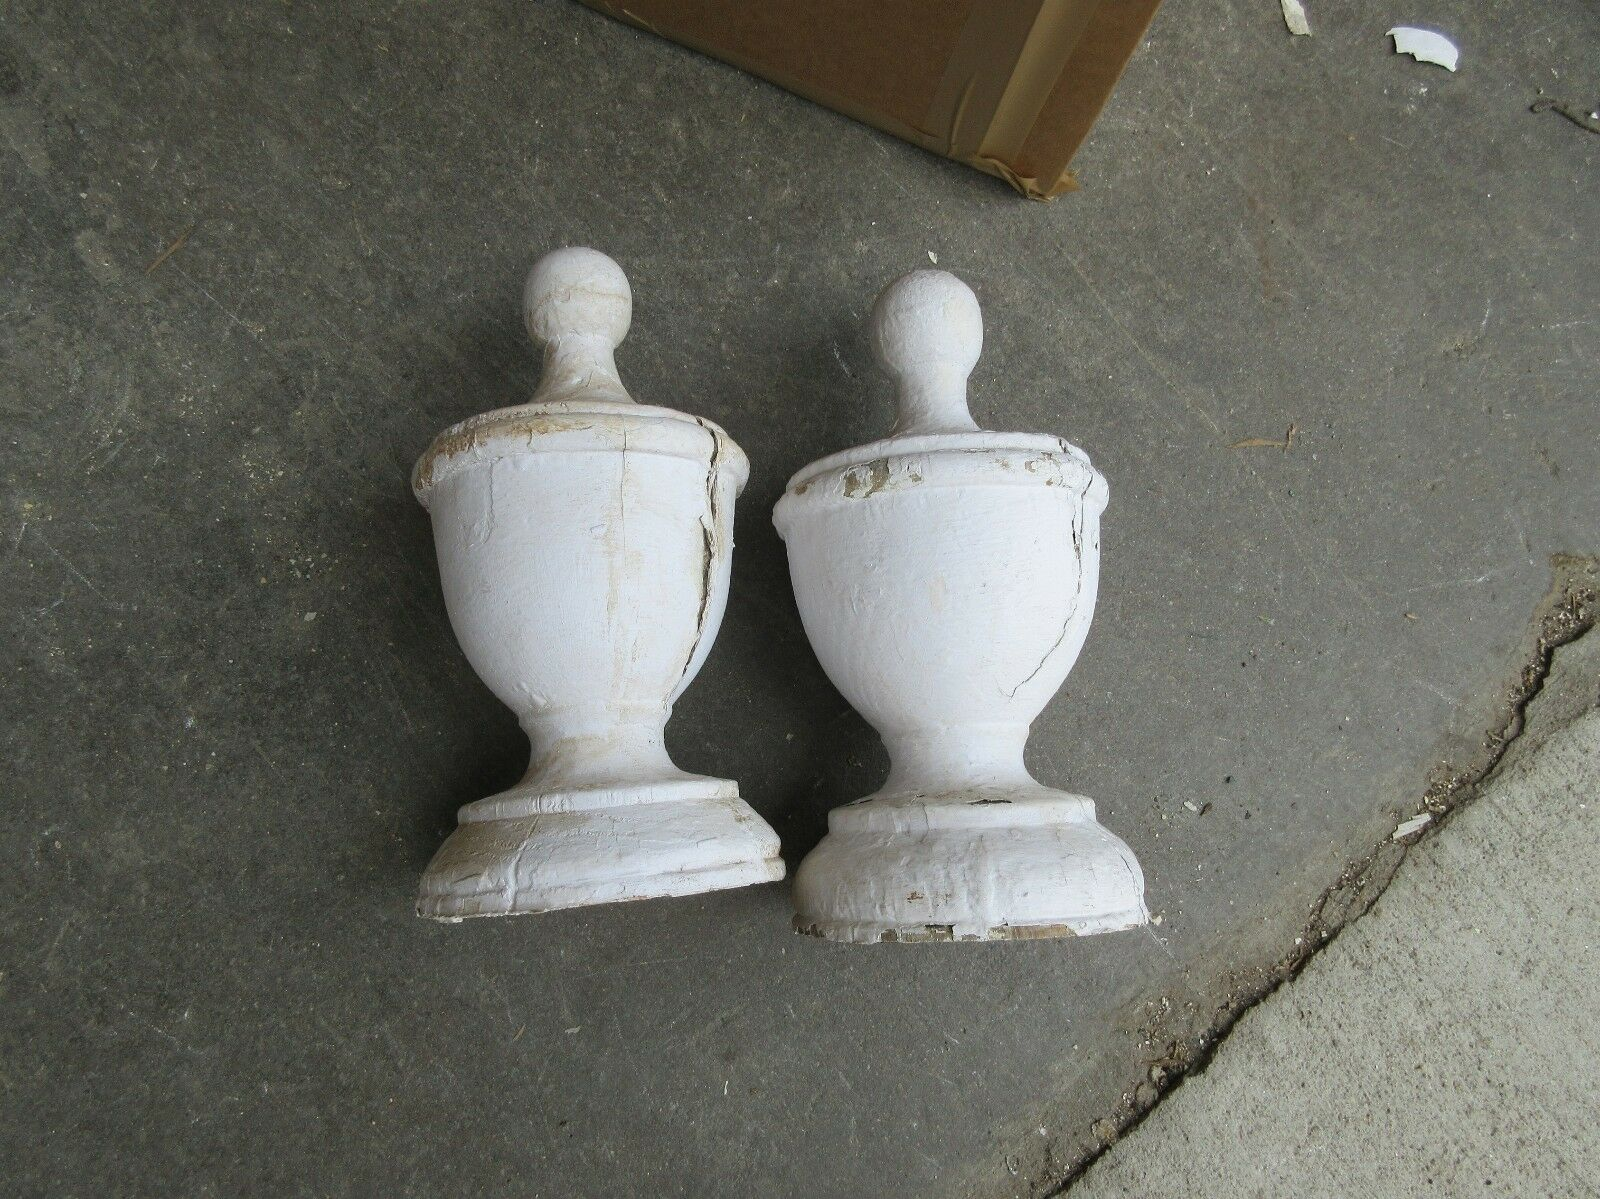 "PAIR white VICTORIAN era wooden fence post cap FINIALS ~ large - 10""h x 5.75 dia"